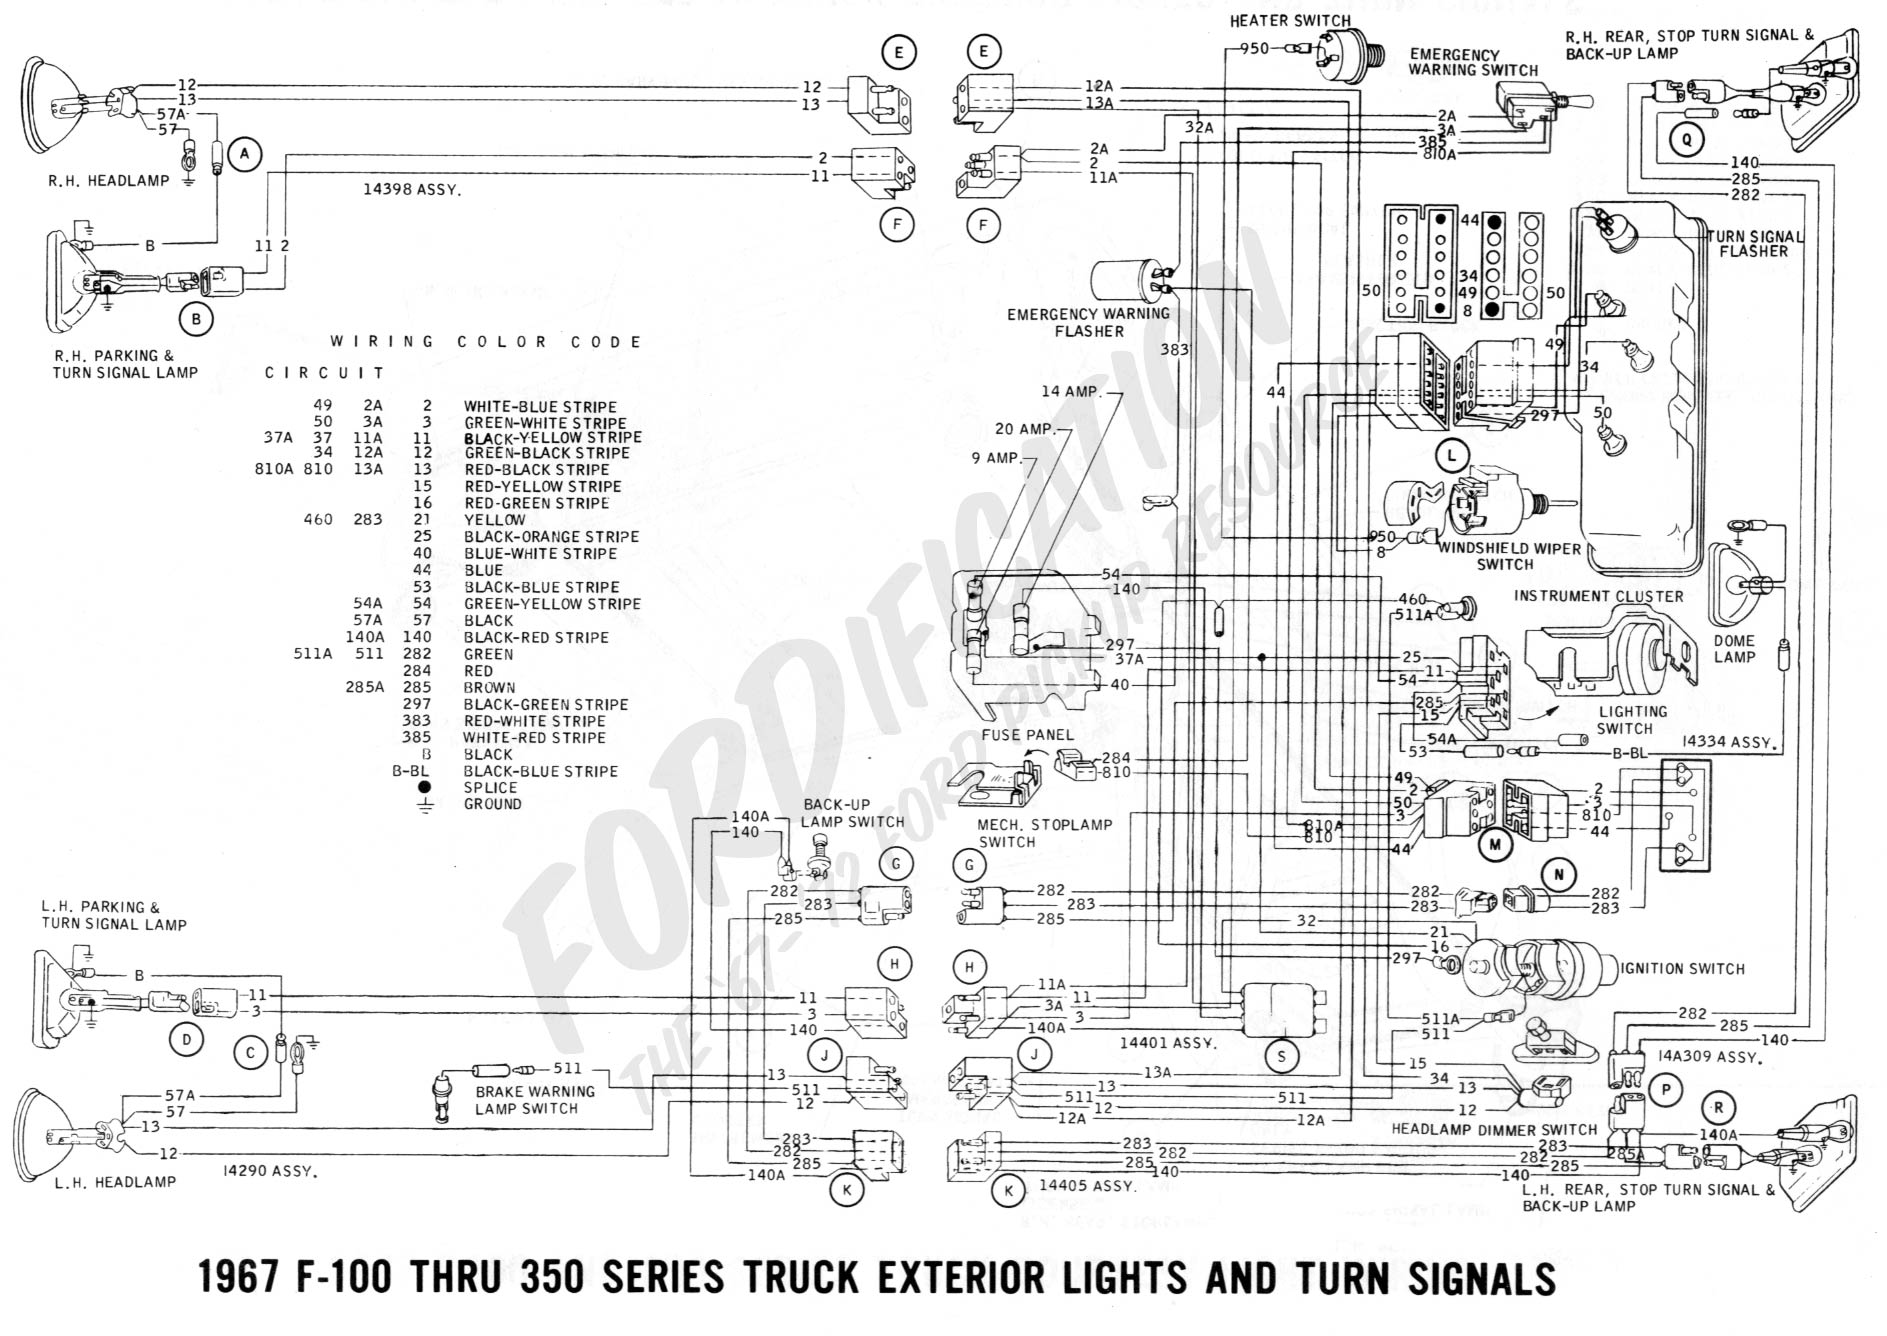 hight resolution of chevy silverado truck on wiring diagram ford f 250 air conditioning wiring diagram ford f 250 air conditioning free download wiring